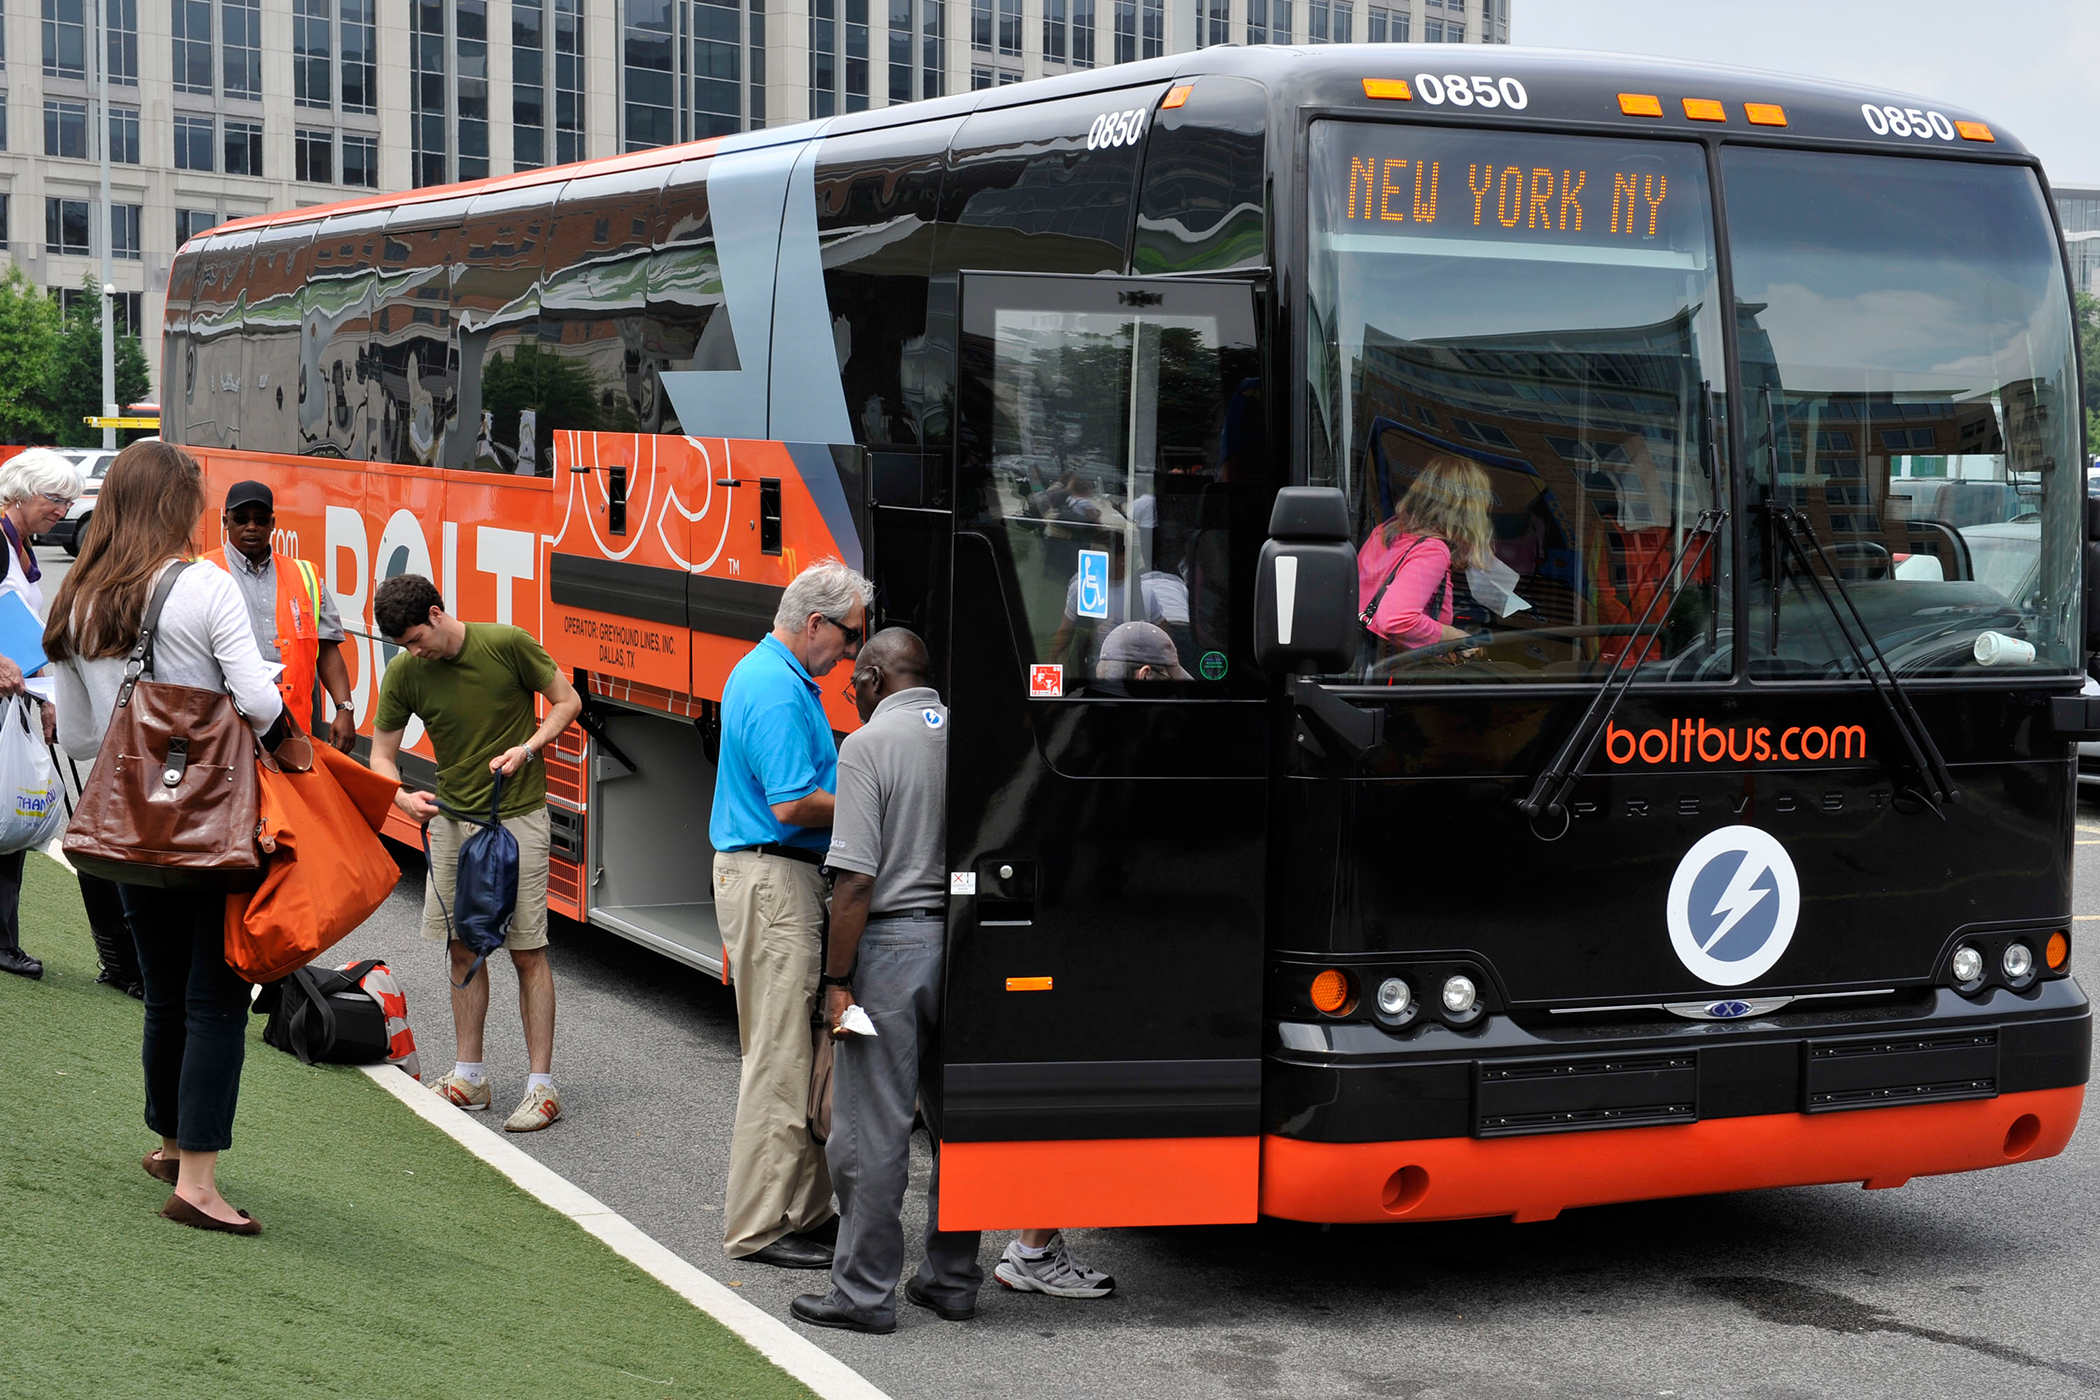 Passengers board a Bolt bus to New York in Washington, D.C.